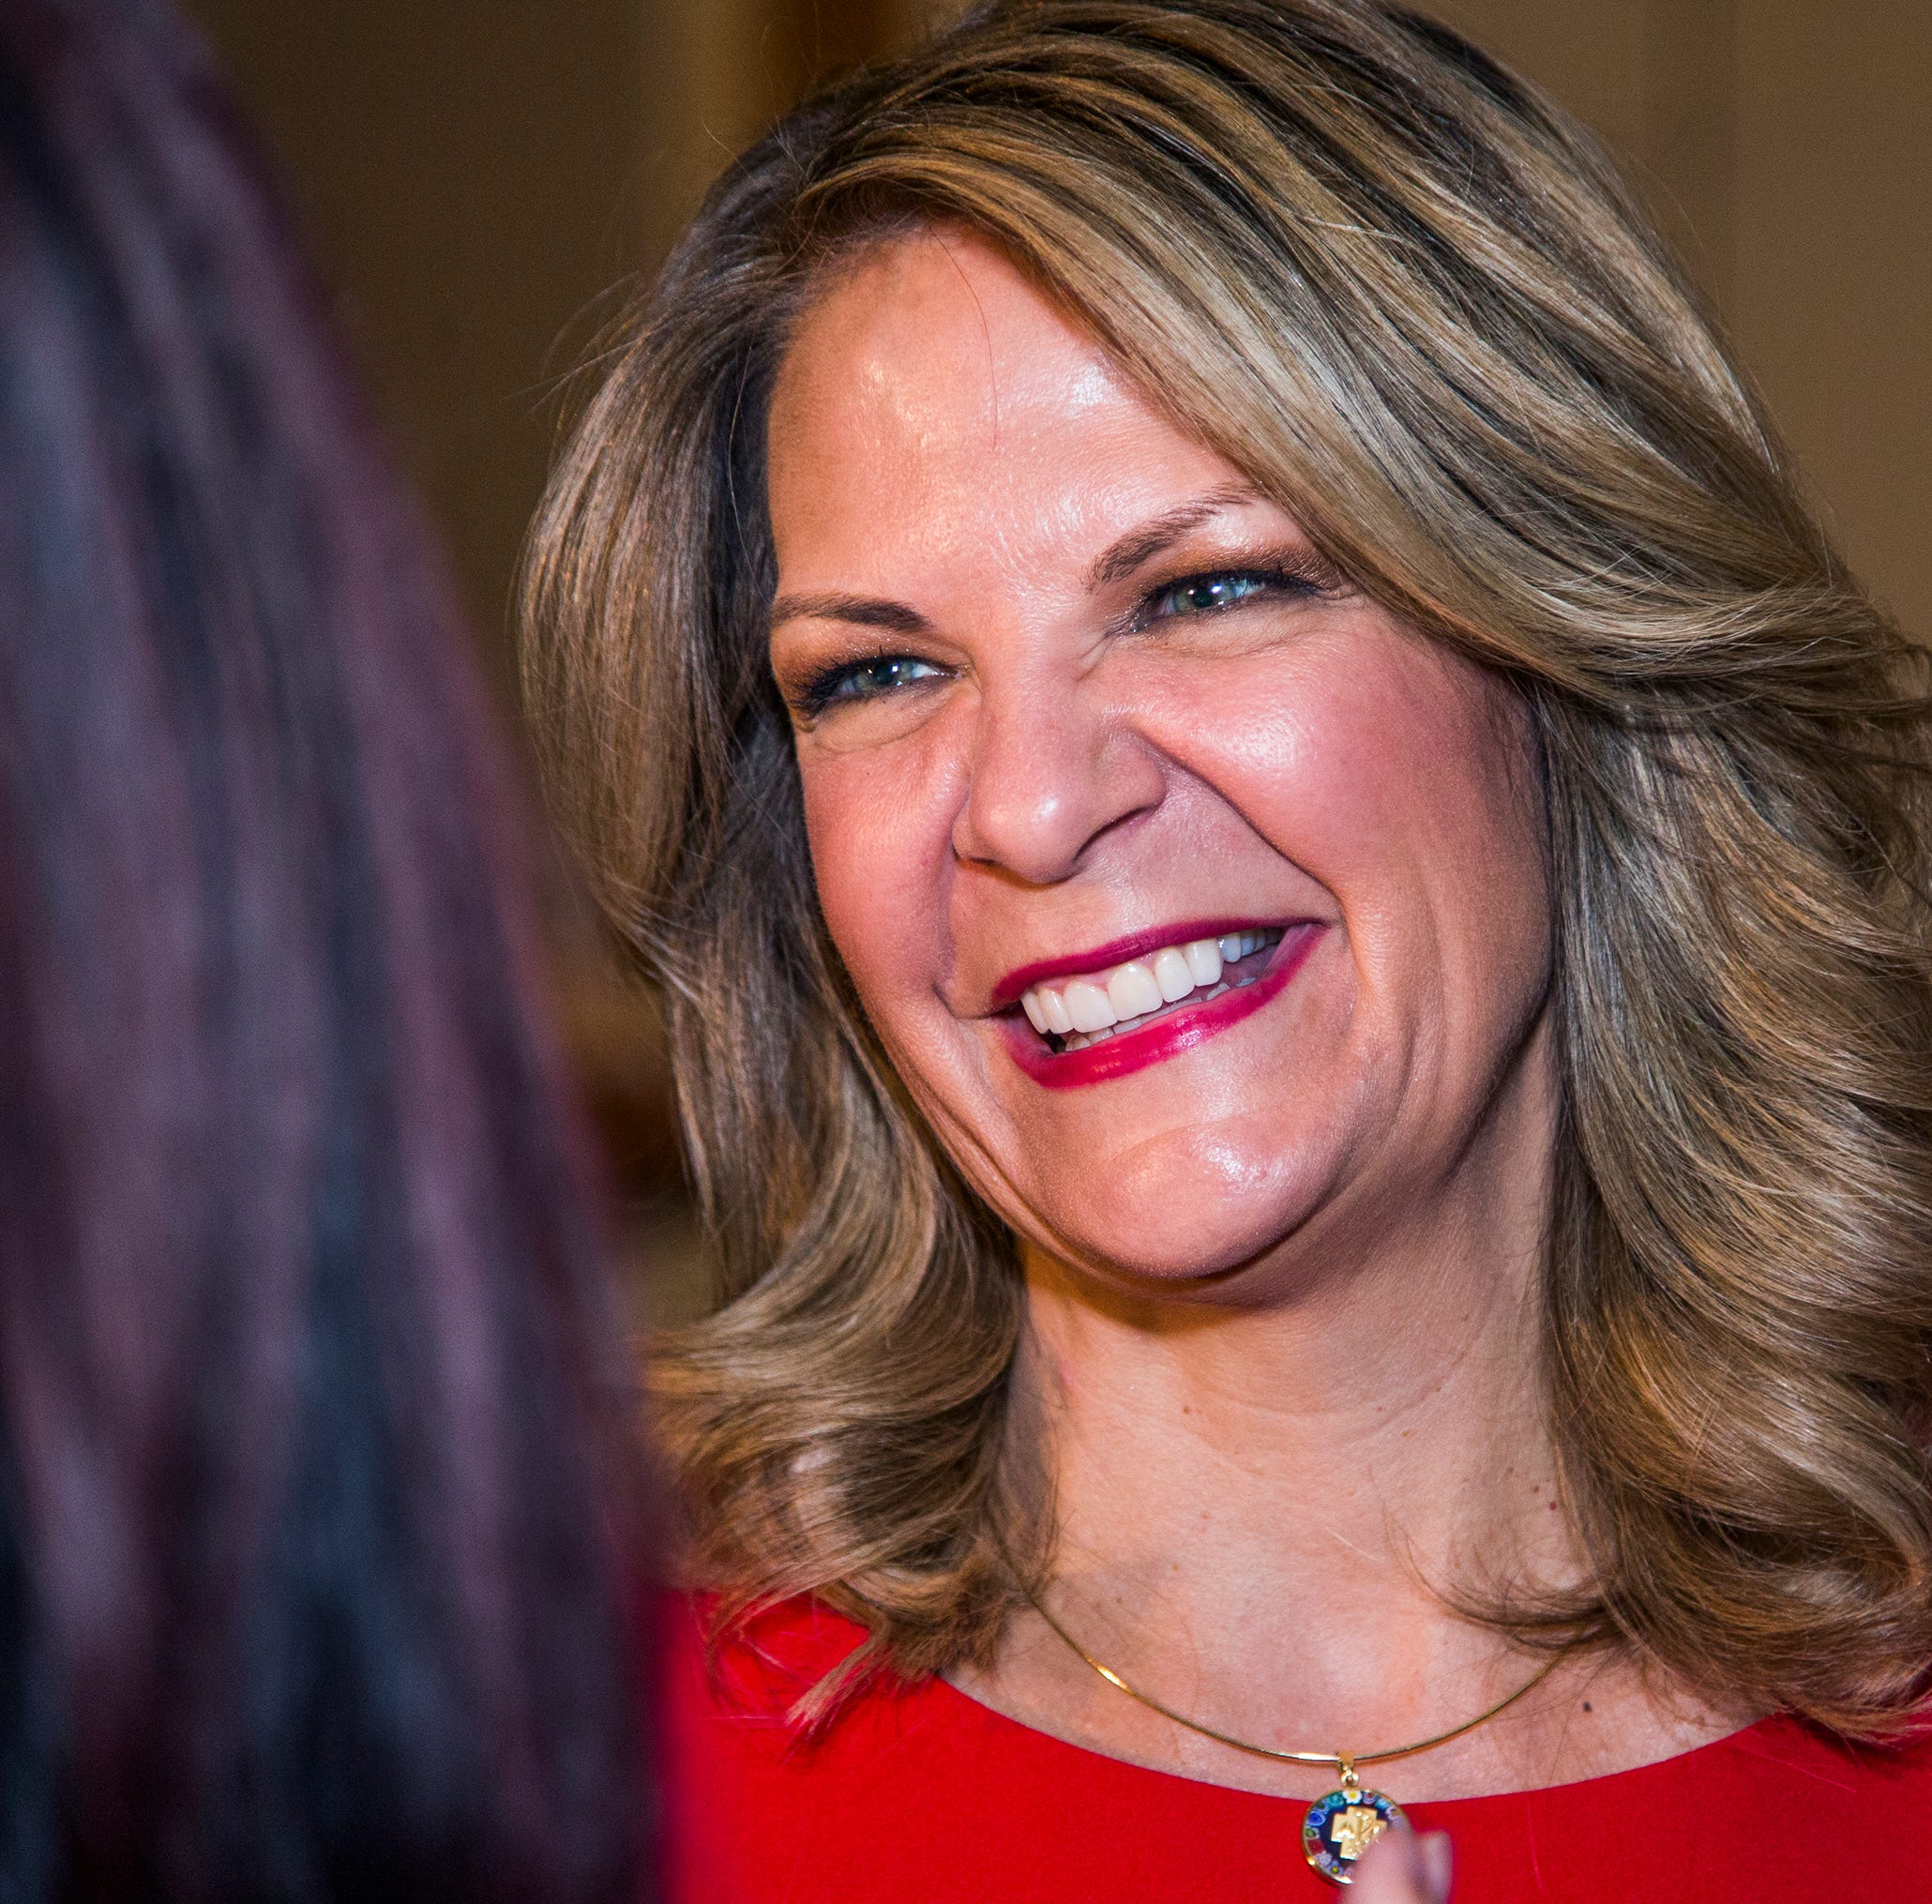 Kelli Ward, Arizona GOP chairwoman, gets help from volunteer who posted racist and homophobic tweets